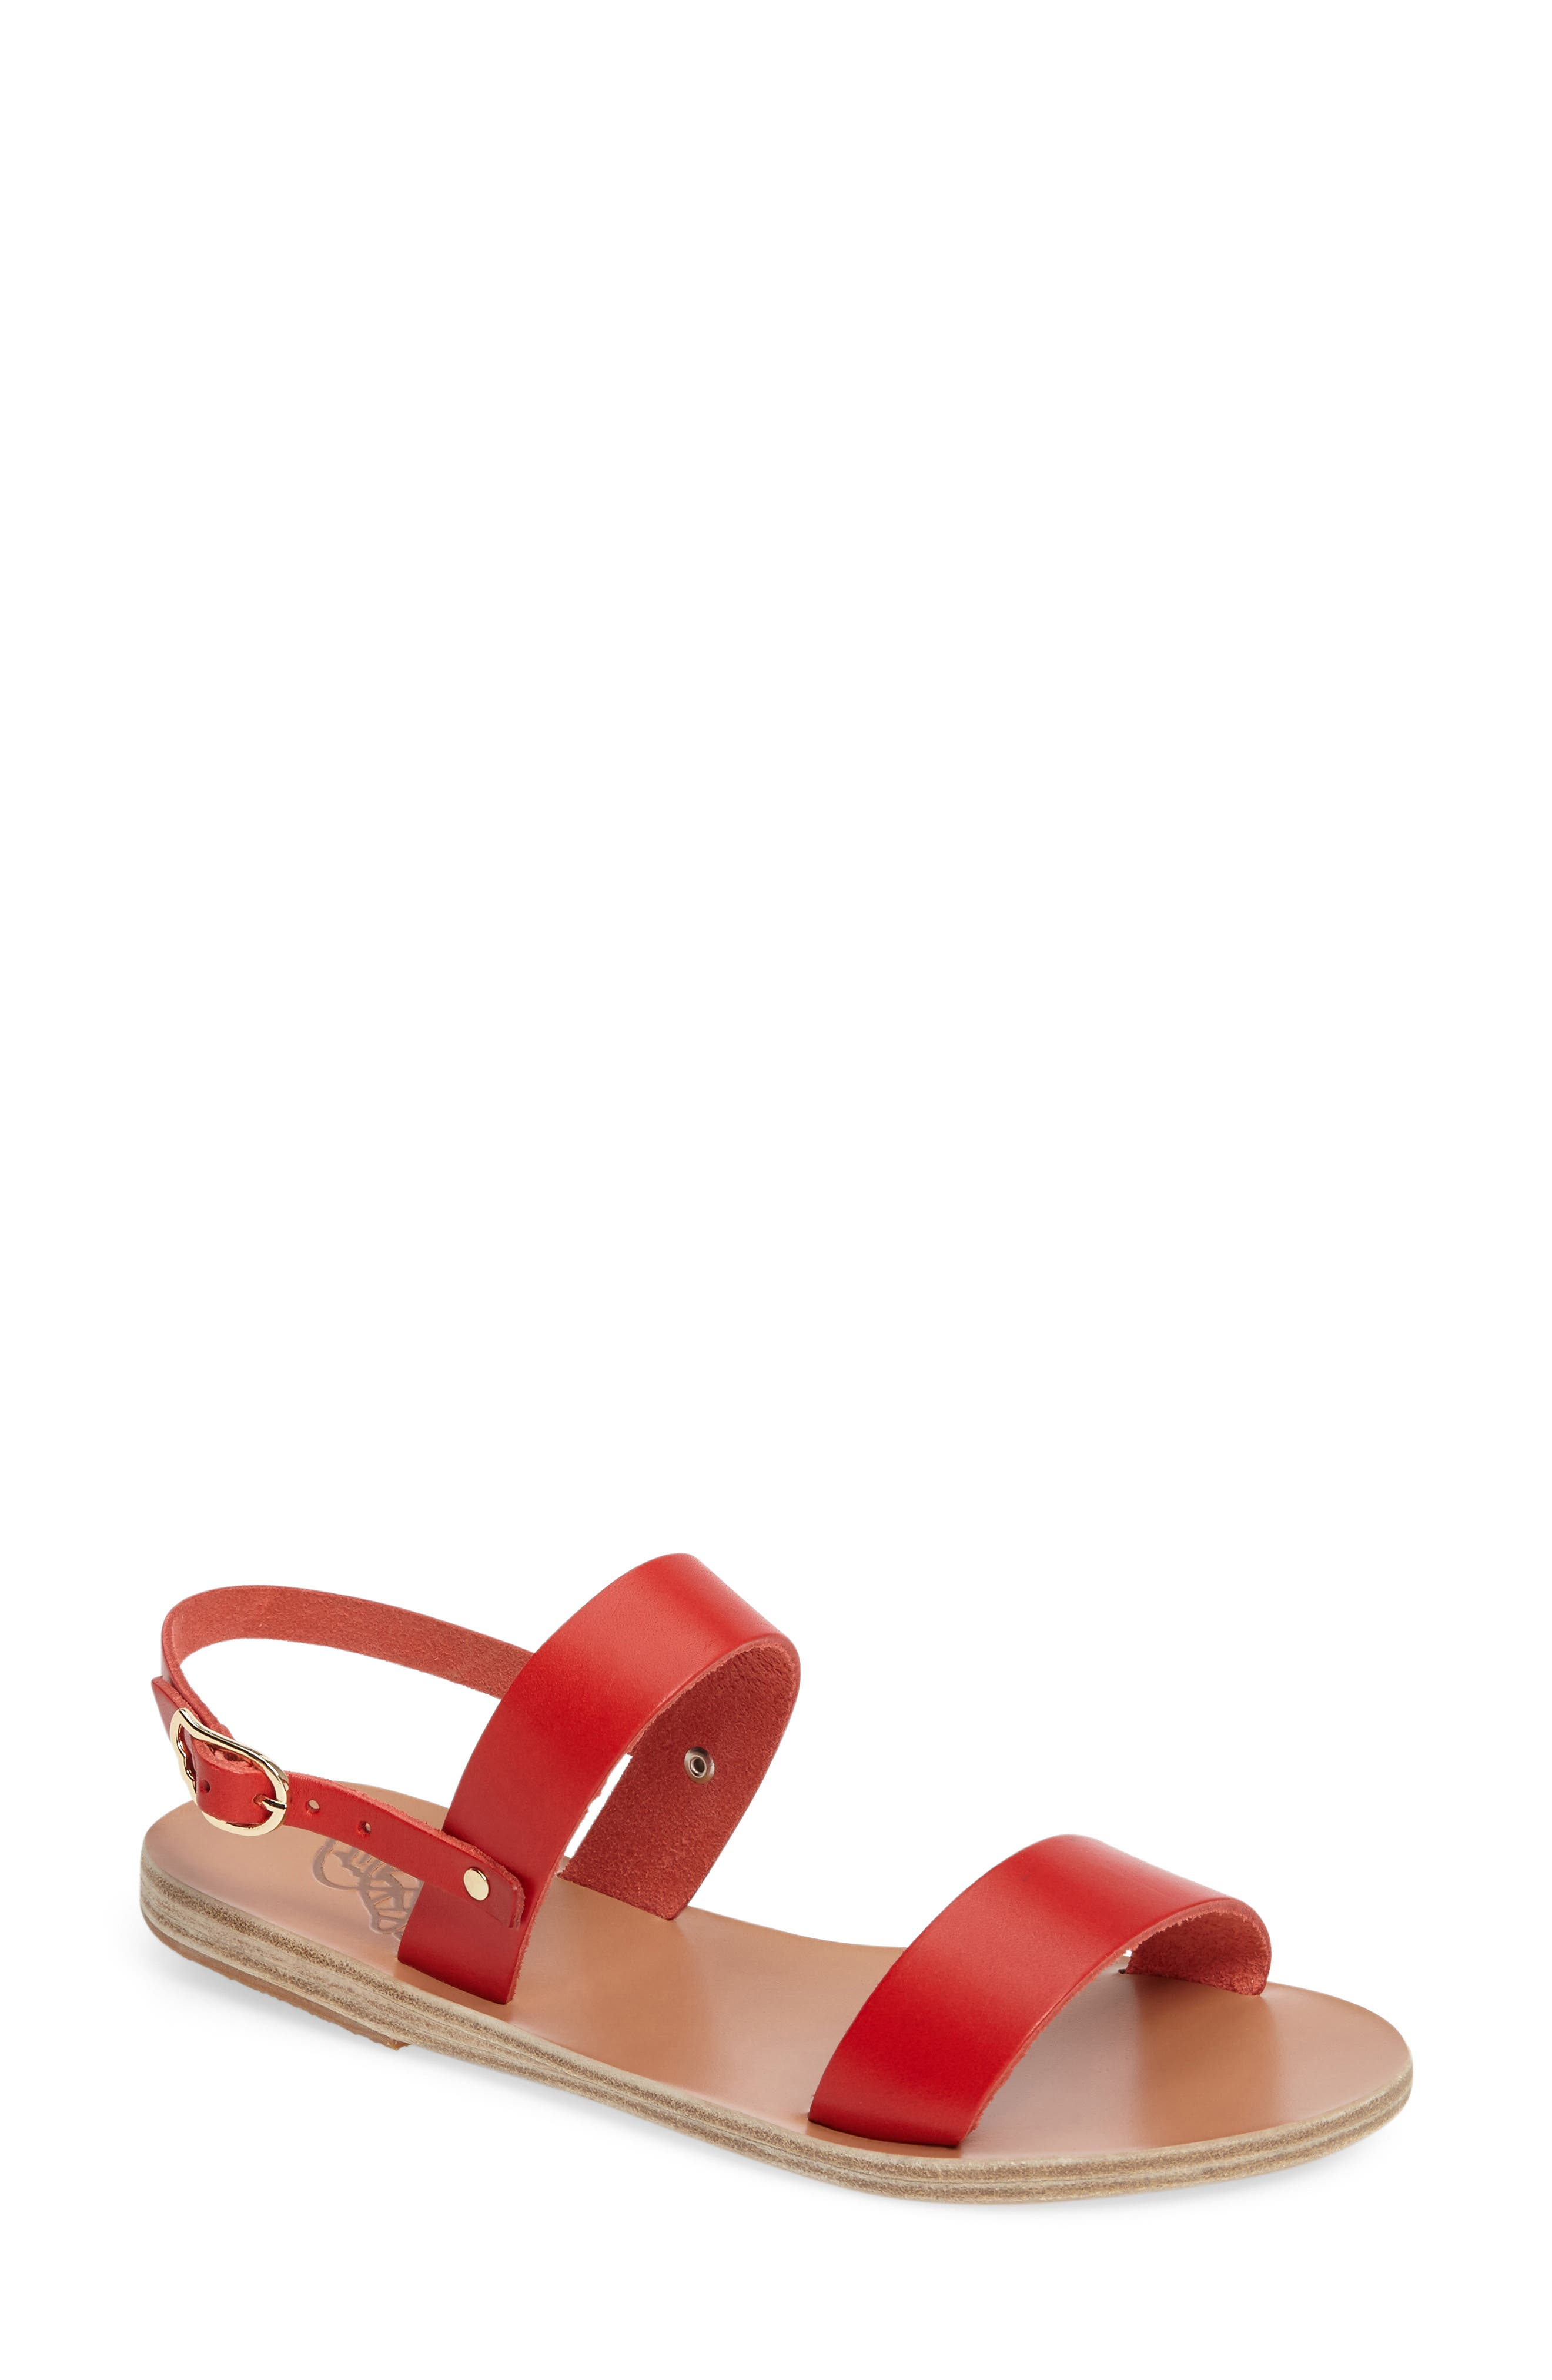 Clio Slingback Sandal,                         Main,                         color, Red